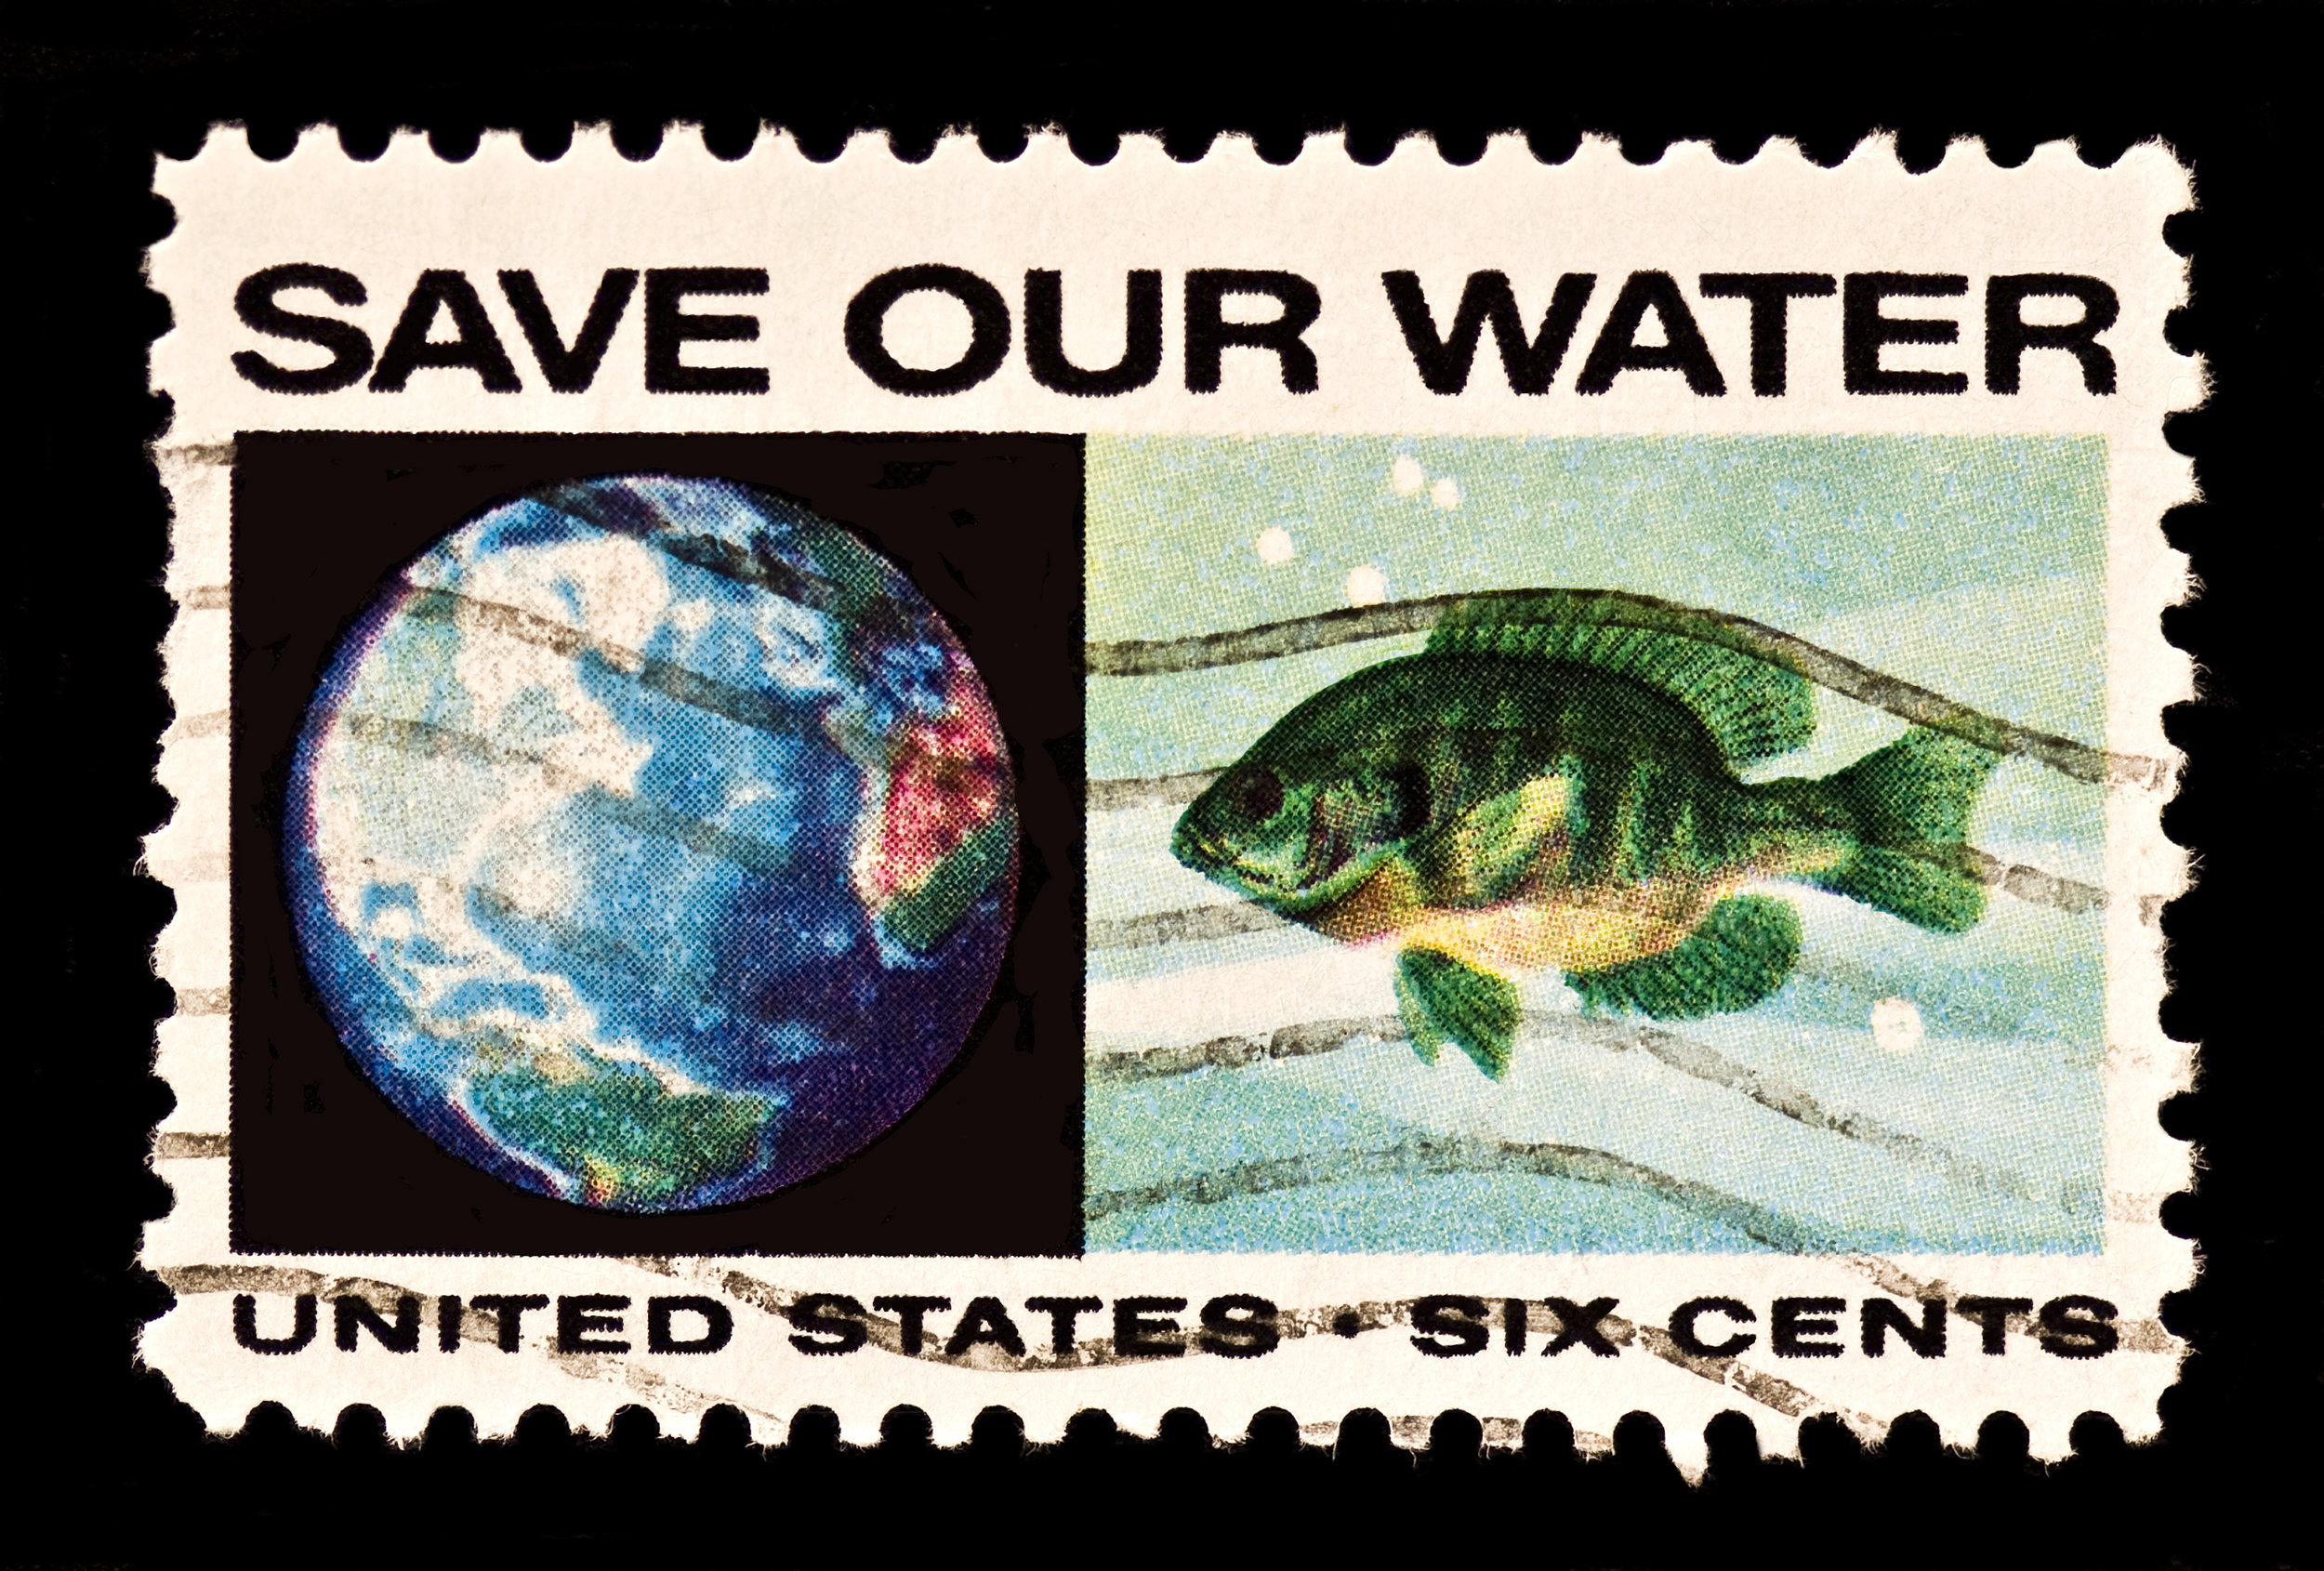 Yes, in 1970 first-class postage was only 6 cents! Editorial credit: / Shutterstock.com